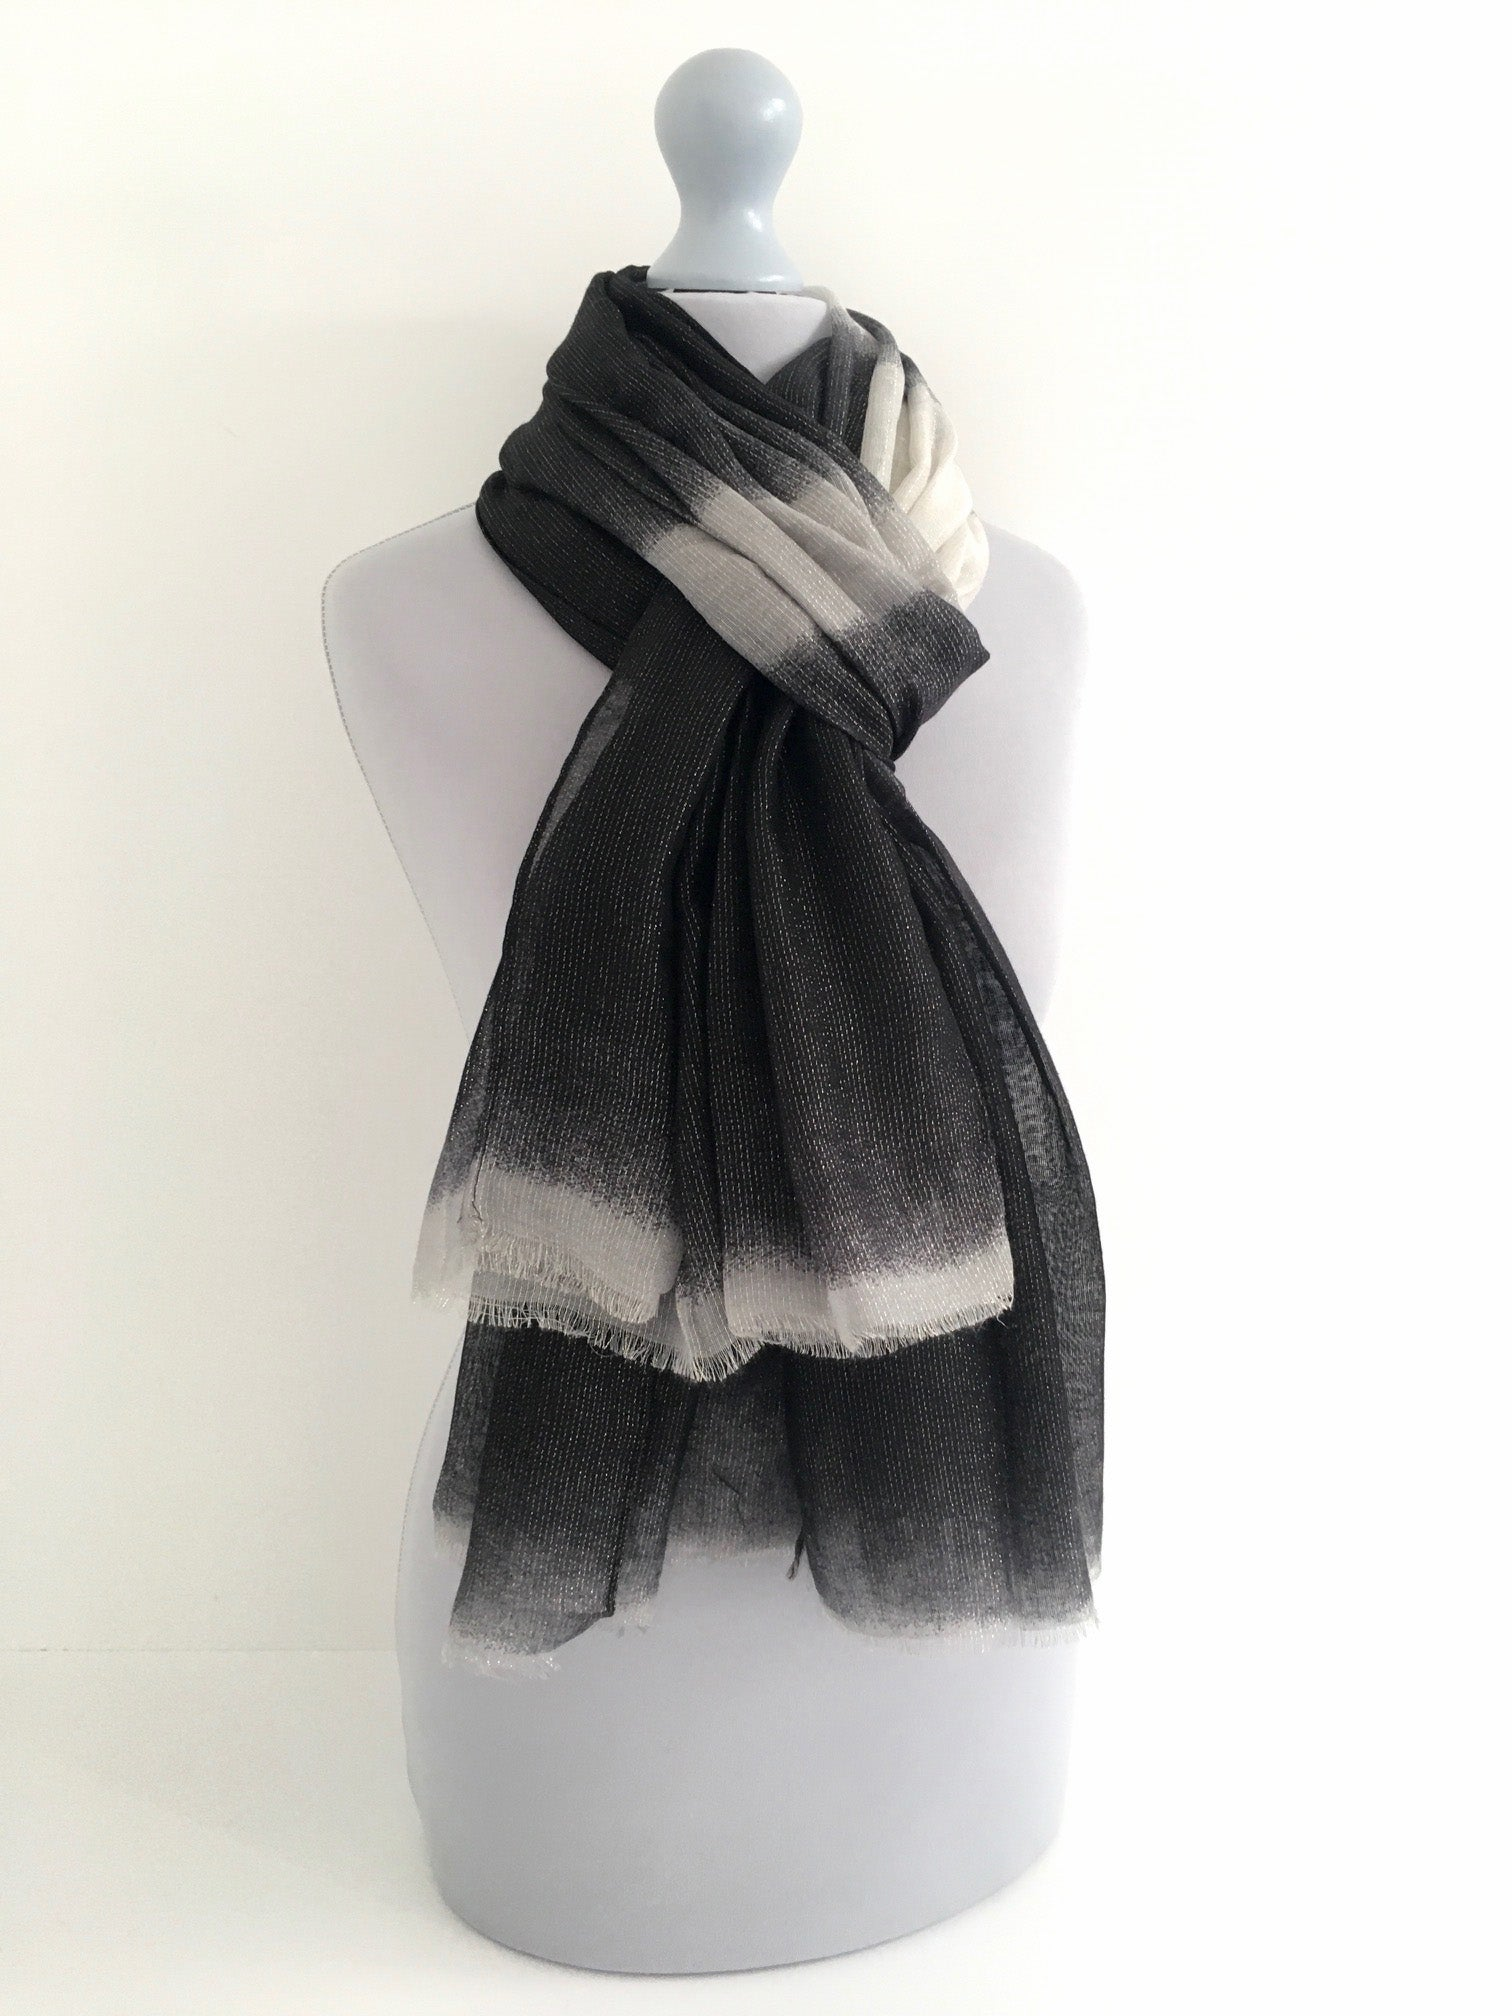 A-SHU LIGHTWEIGHT BLACK OMBRE METALLIC GOLD THREAD SCARF - A-SHU.CO.UK